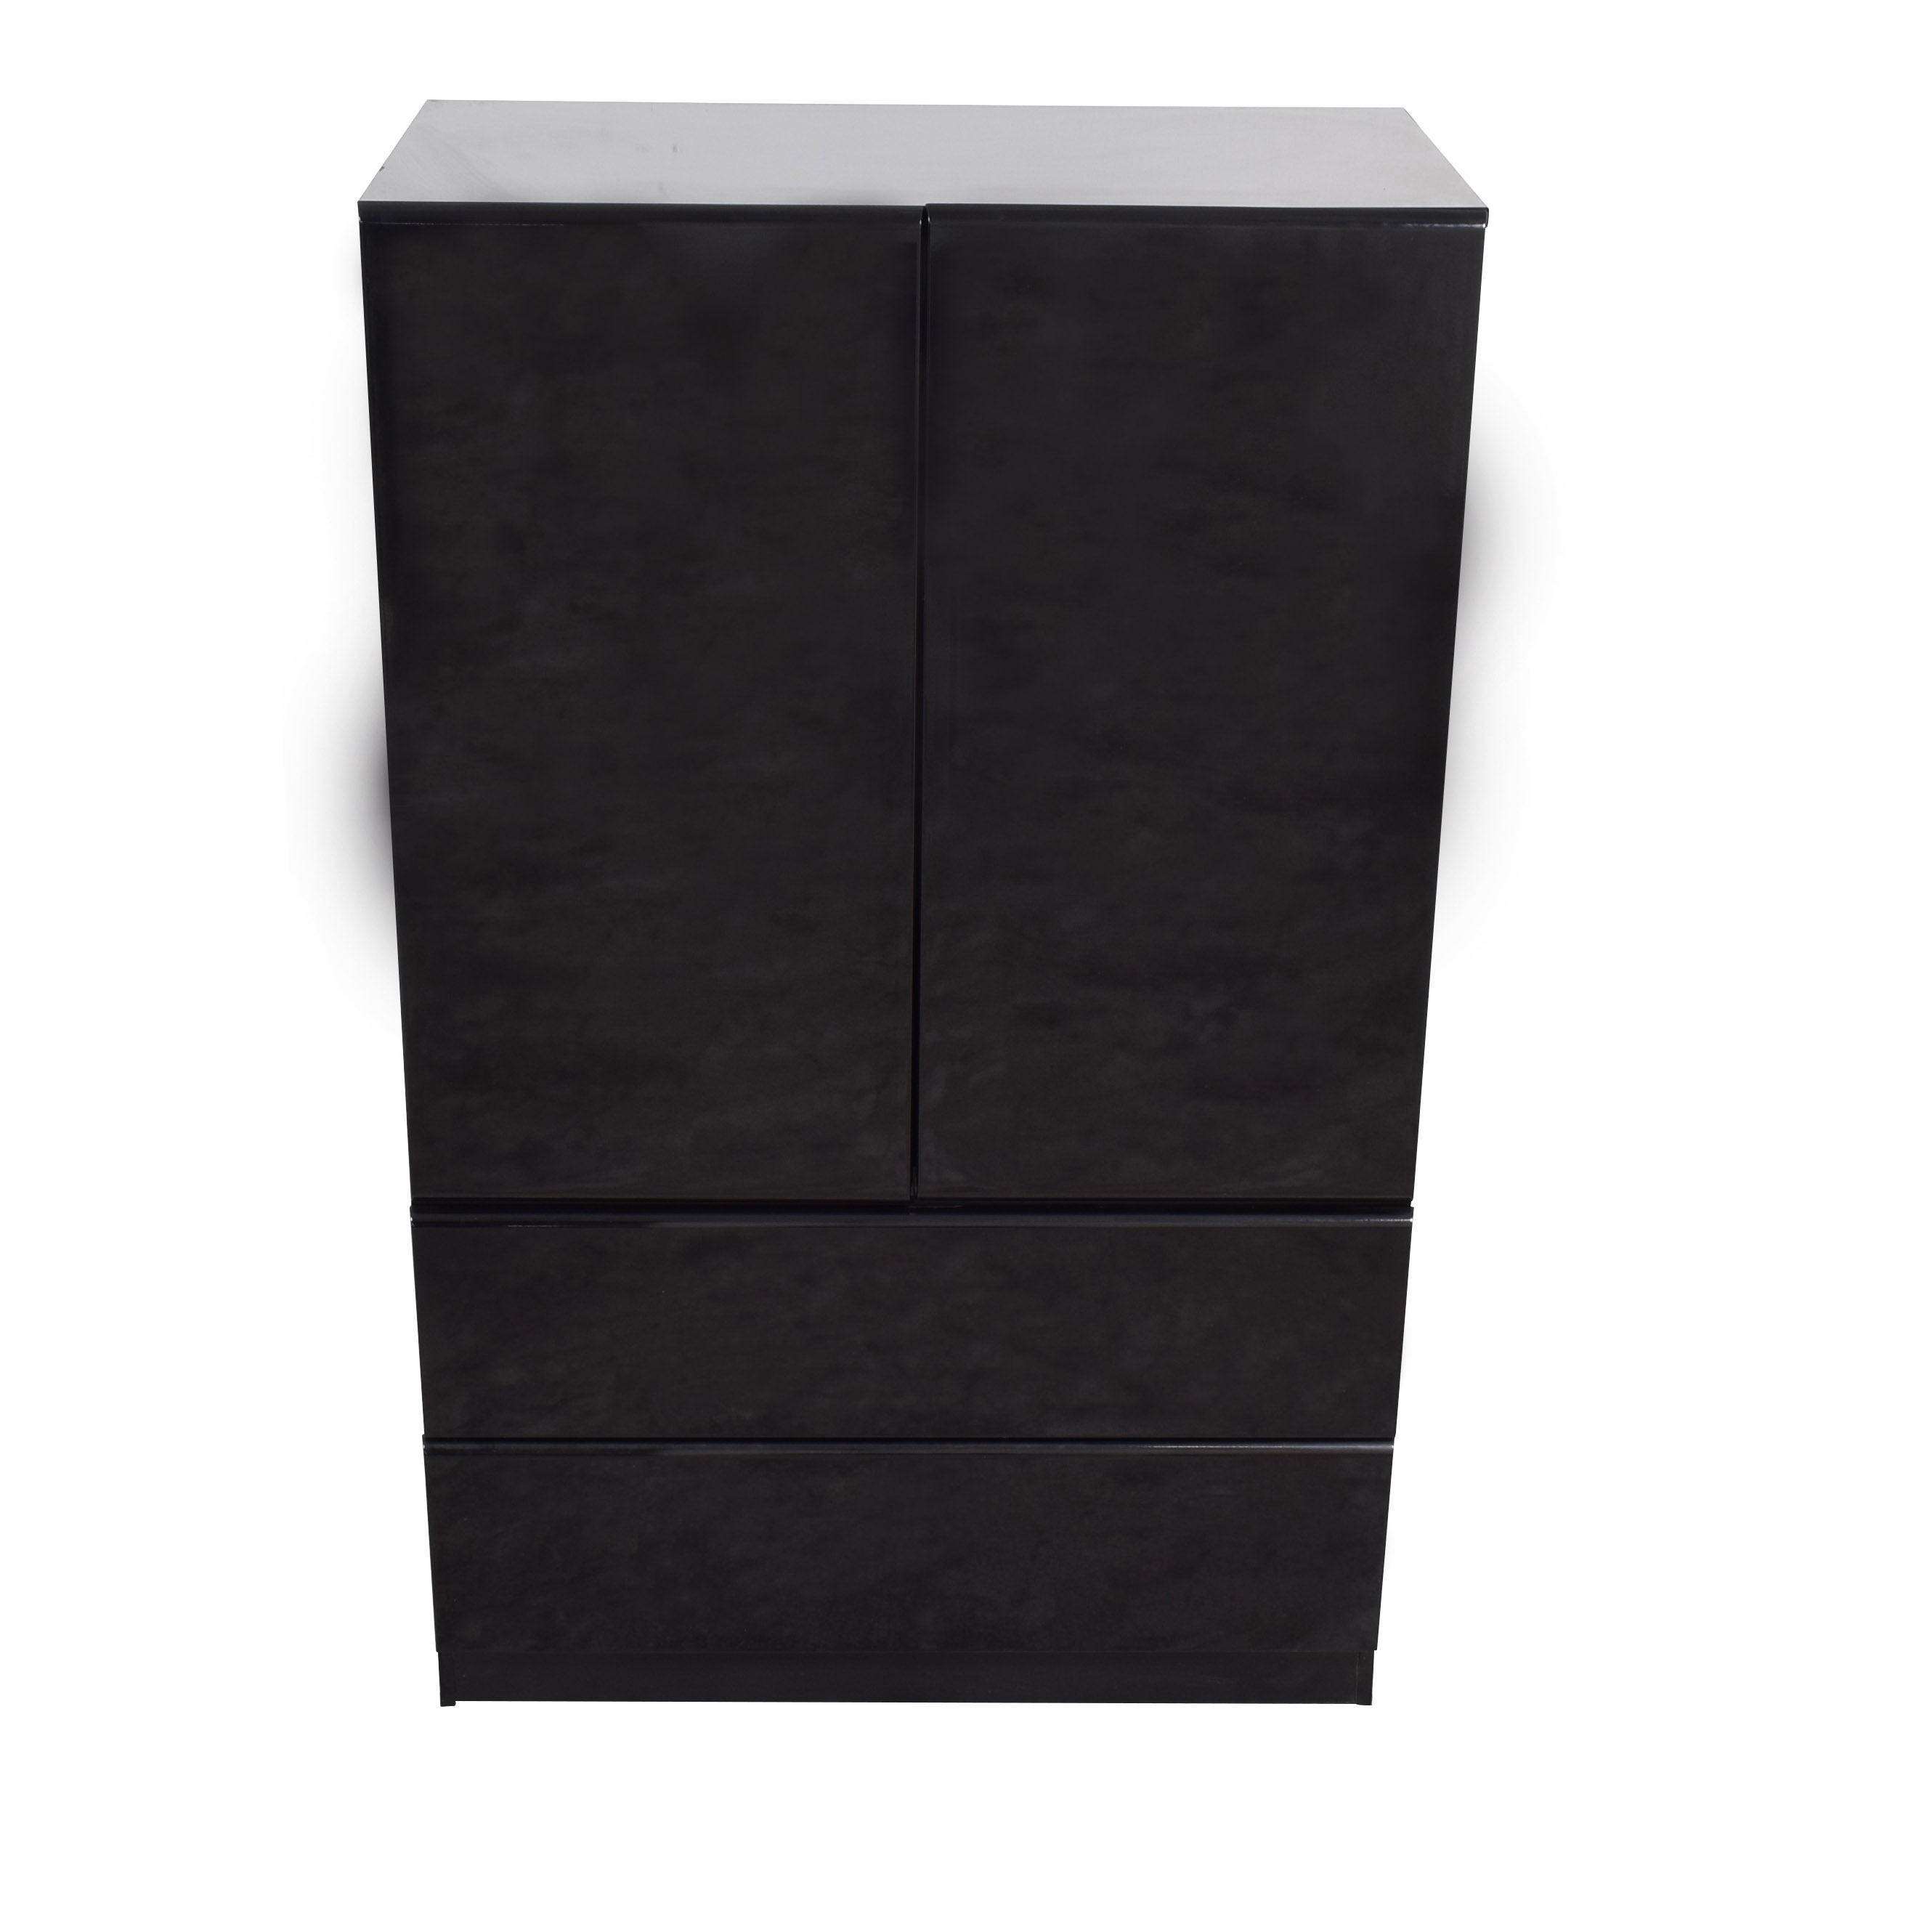 shop Millennium Millennium Black Two-Drawer Clothing Armoire or Tall Dresser online